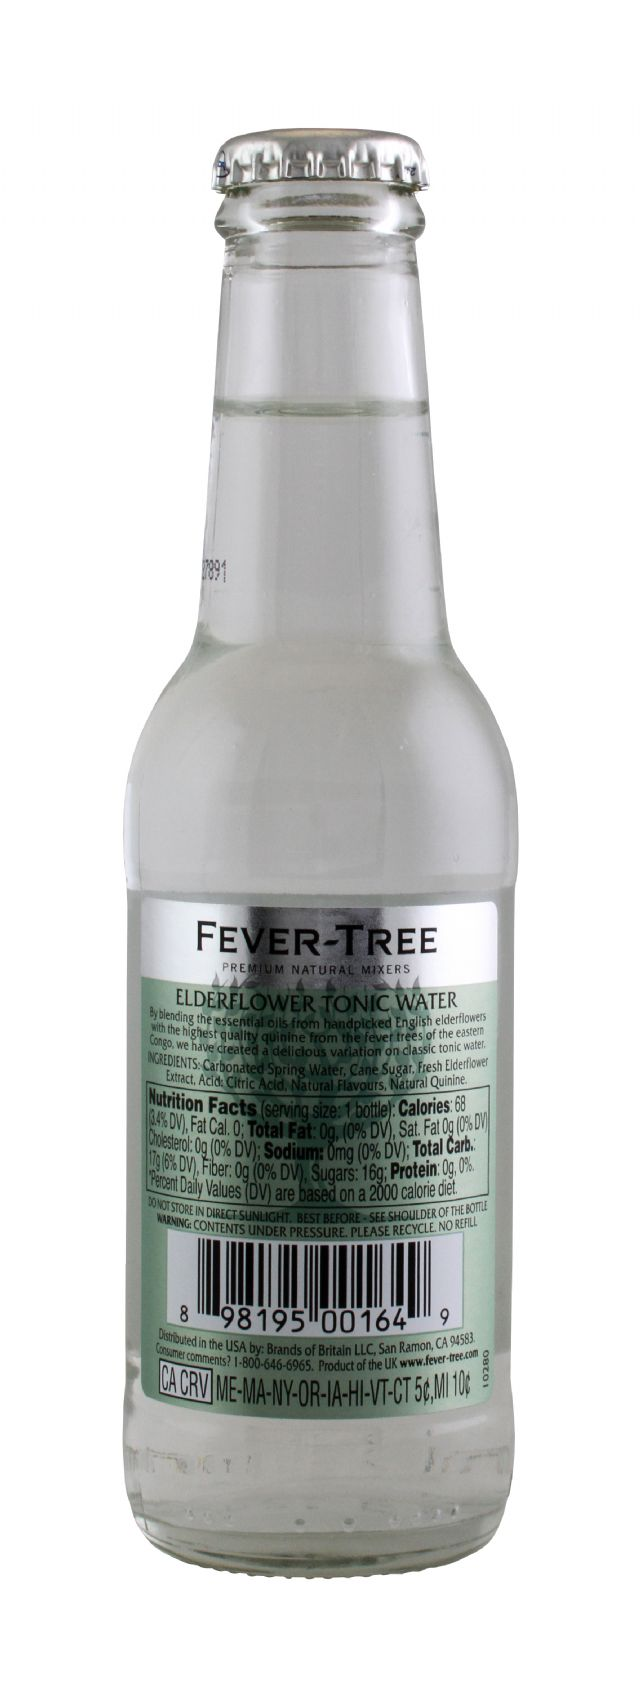 Fever-Tree Premium Mixers: FeverTree Facts